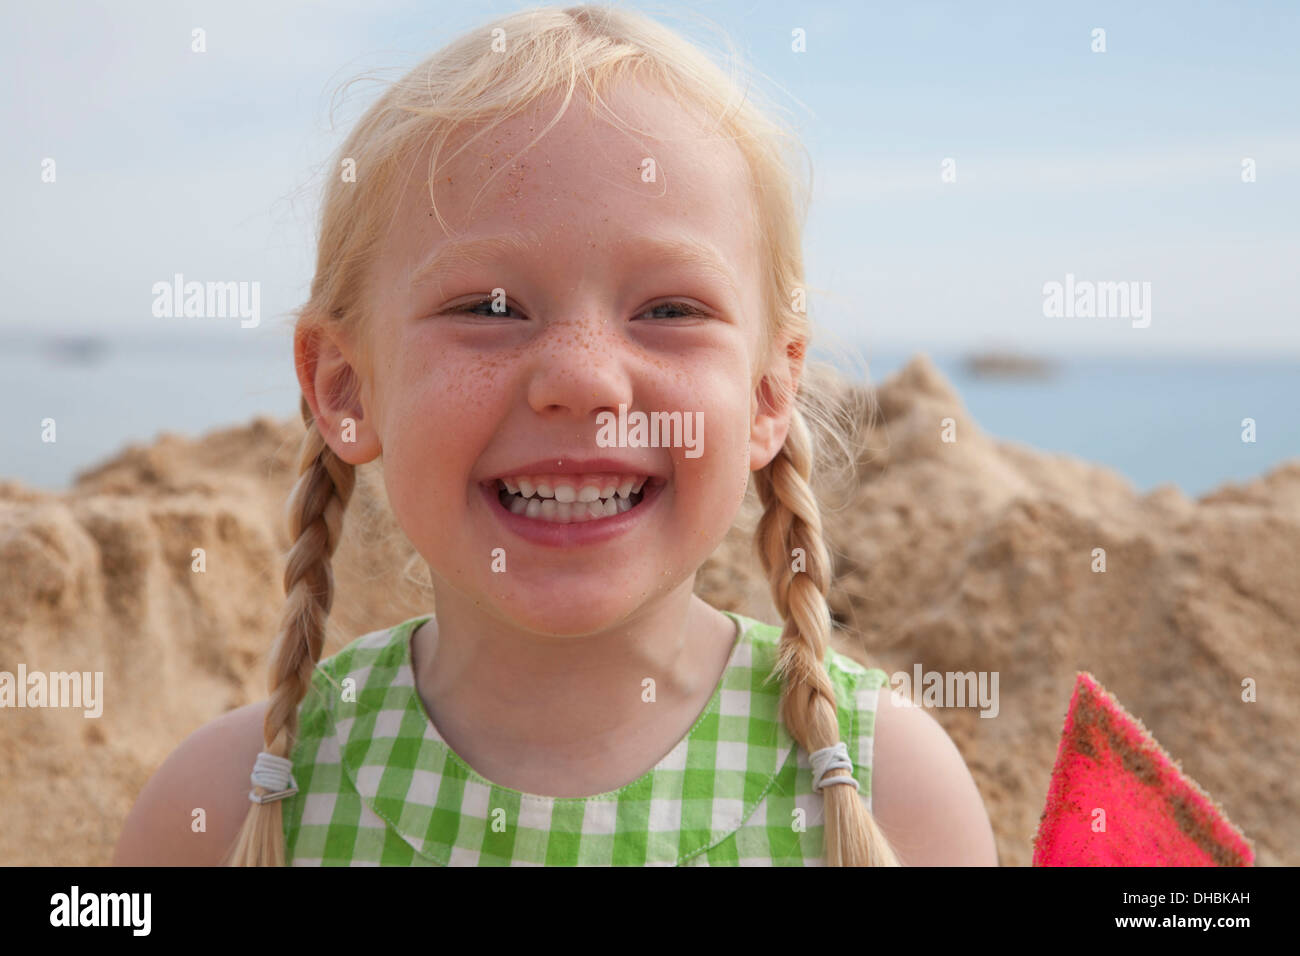 A girl beside a huge pile of sand on the beach, grinning at the camera. - Stock Image